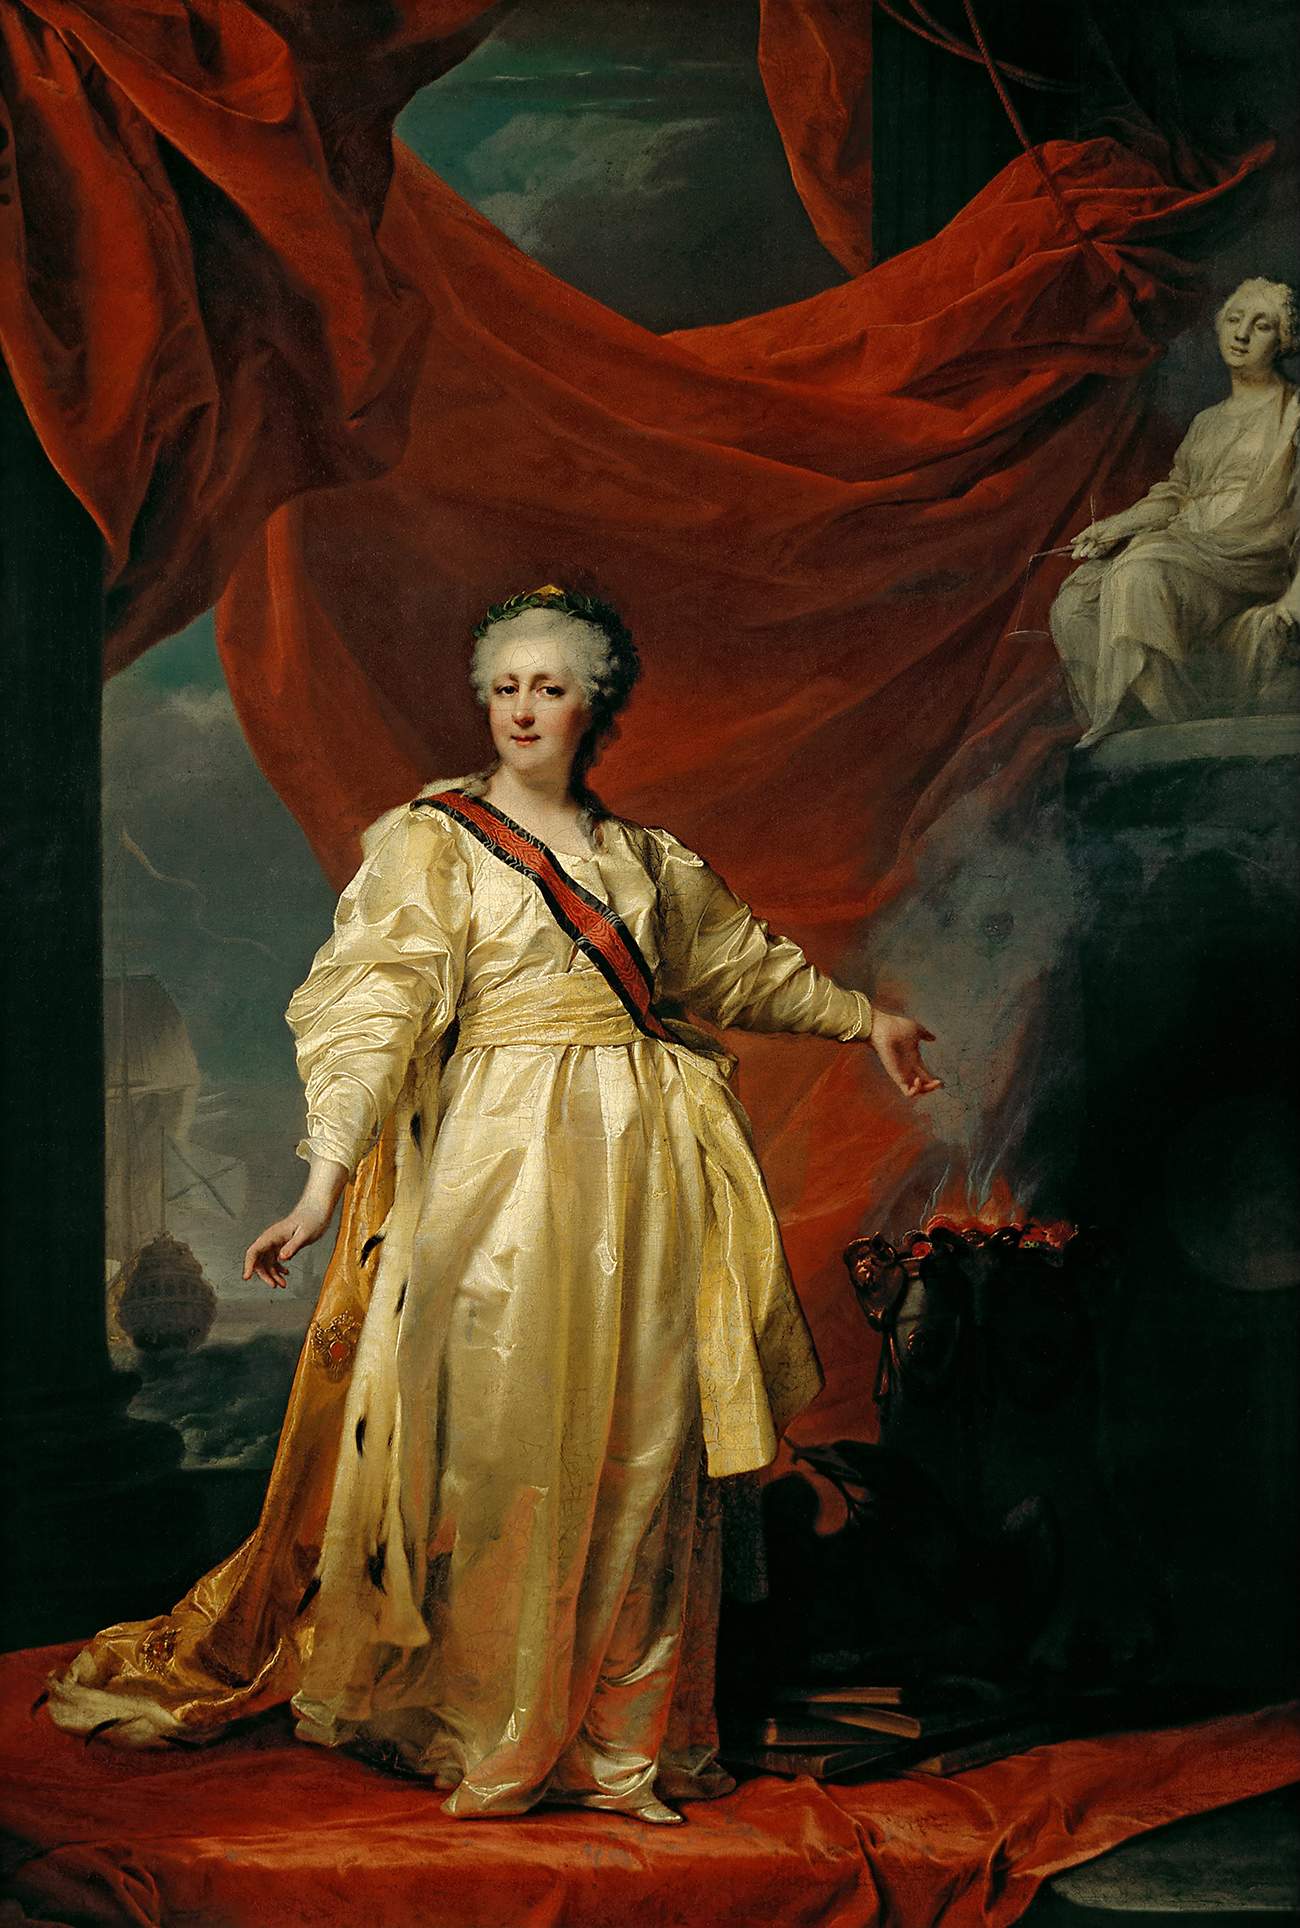 Portrait of Catherine the Great as a Lawgiver in the Temple of the Goddess of Justice, early 1780s, by Dmitry Levitsky. Source: State Tretyakov Gallery